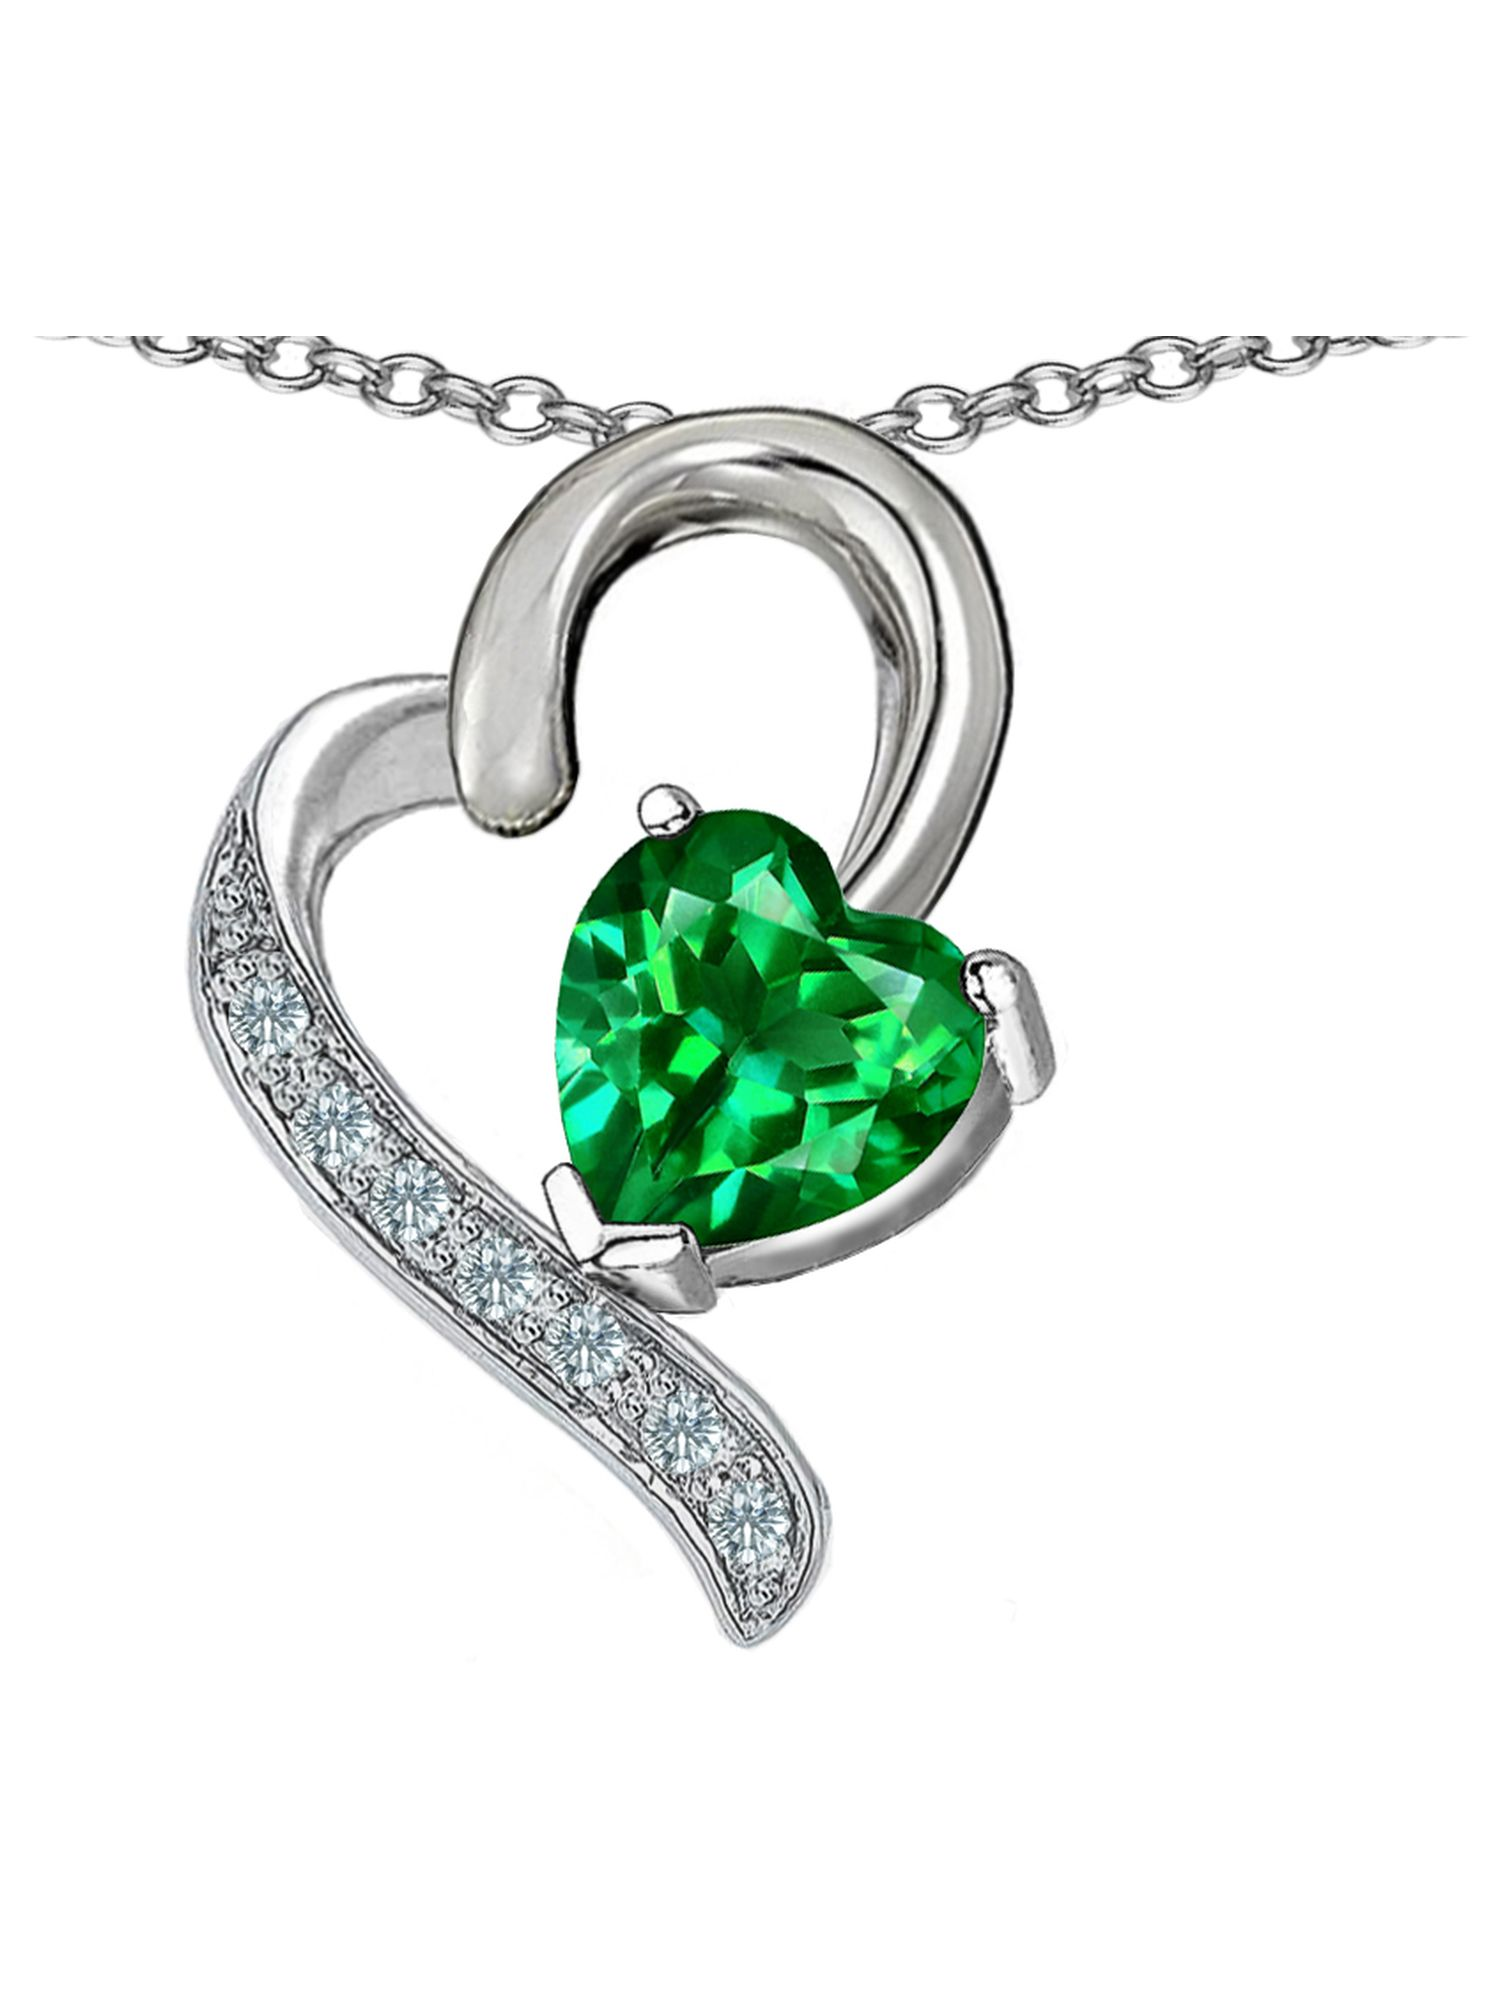 Star K 7mm Cushion Cut Simulated Emerald Bali Style Pendant Necklace Sterling Silver